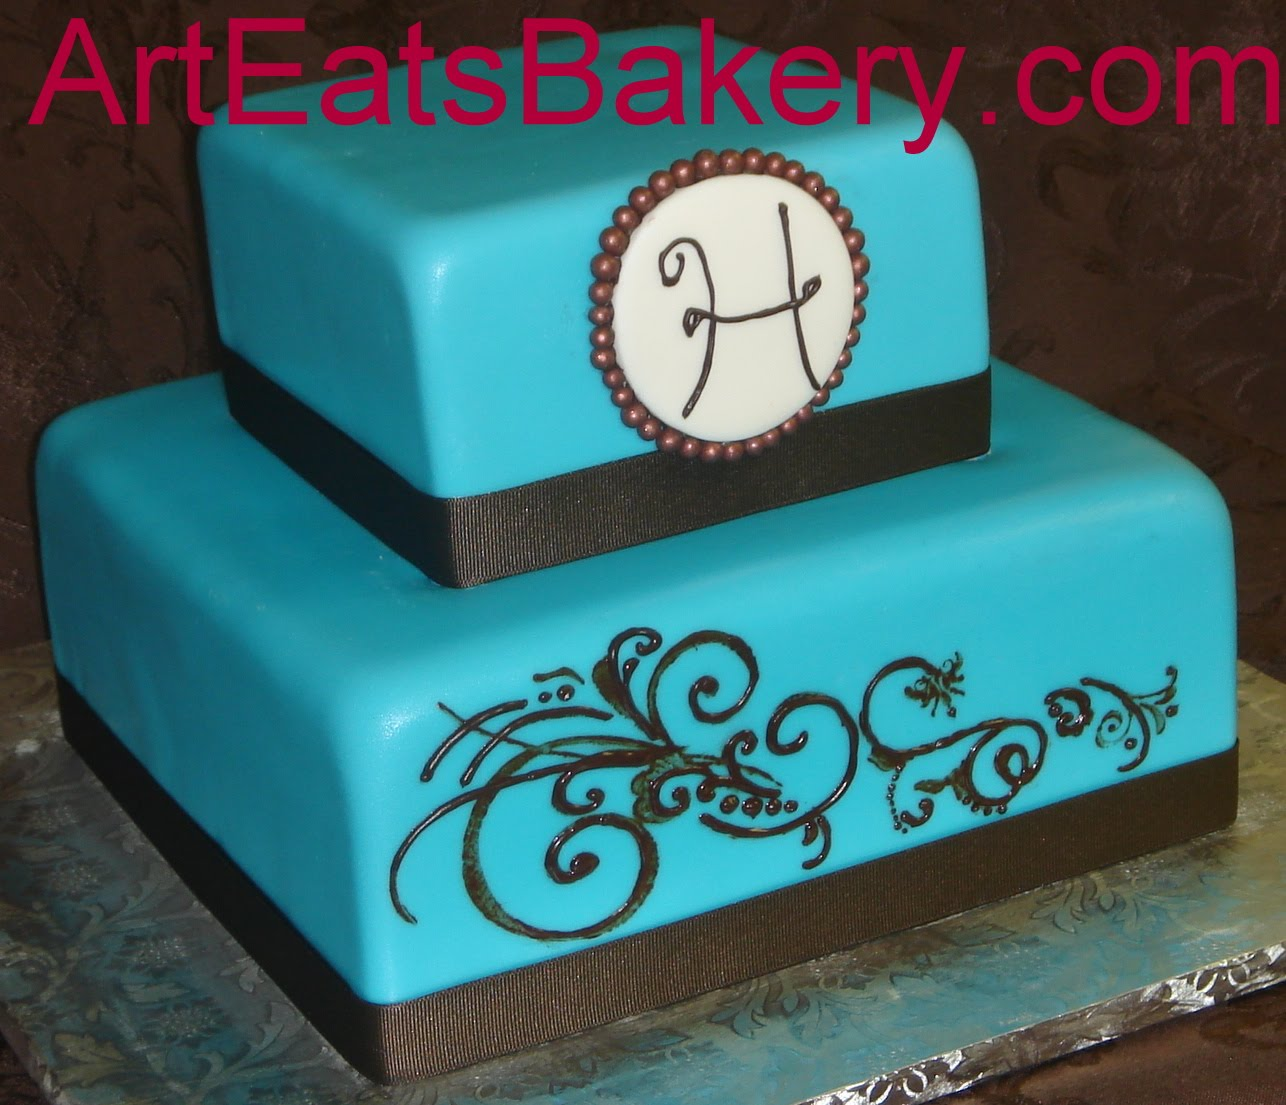 2 Layer Cake Designs http://arteatsbakery.blogspot.com/2010_07_01_archive.html